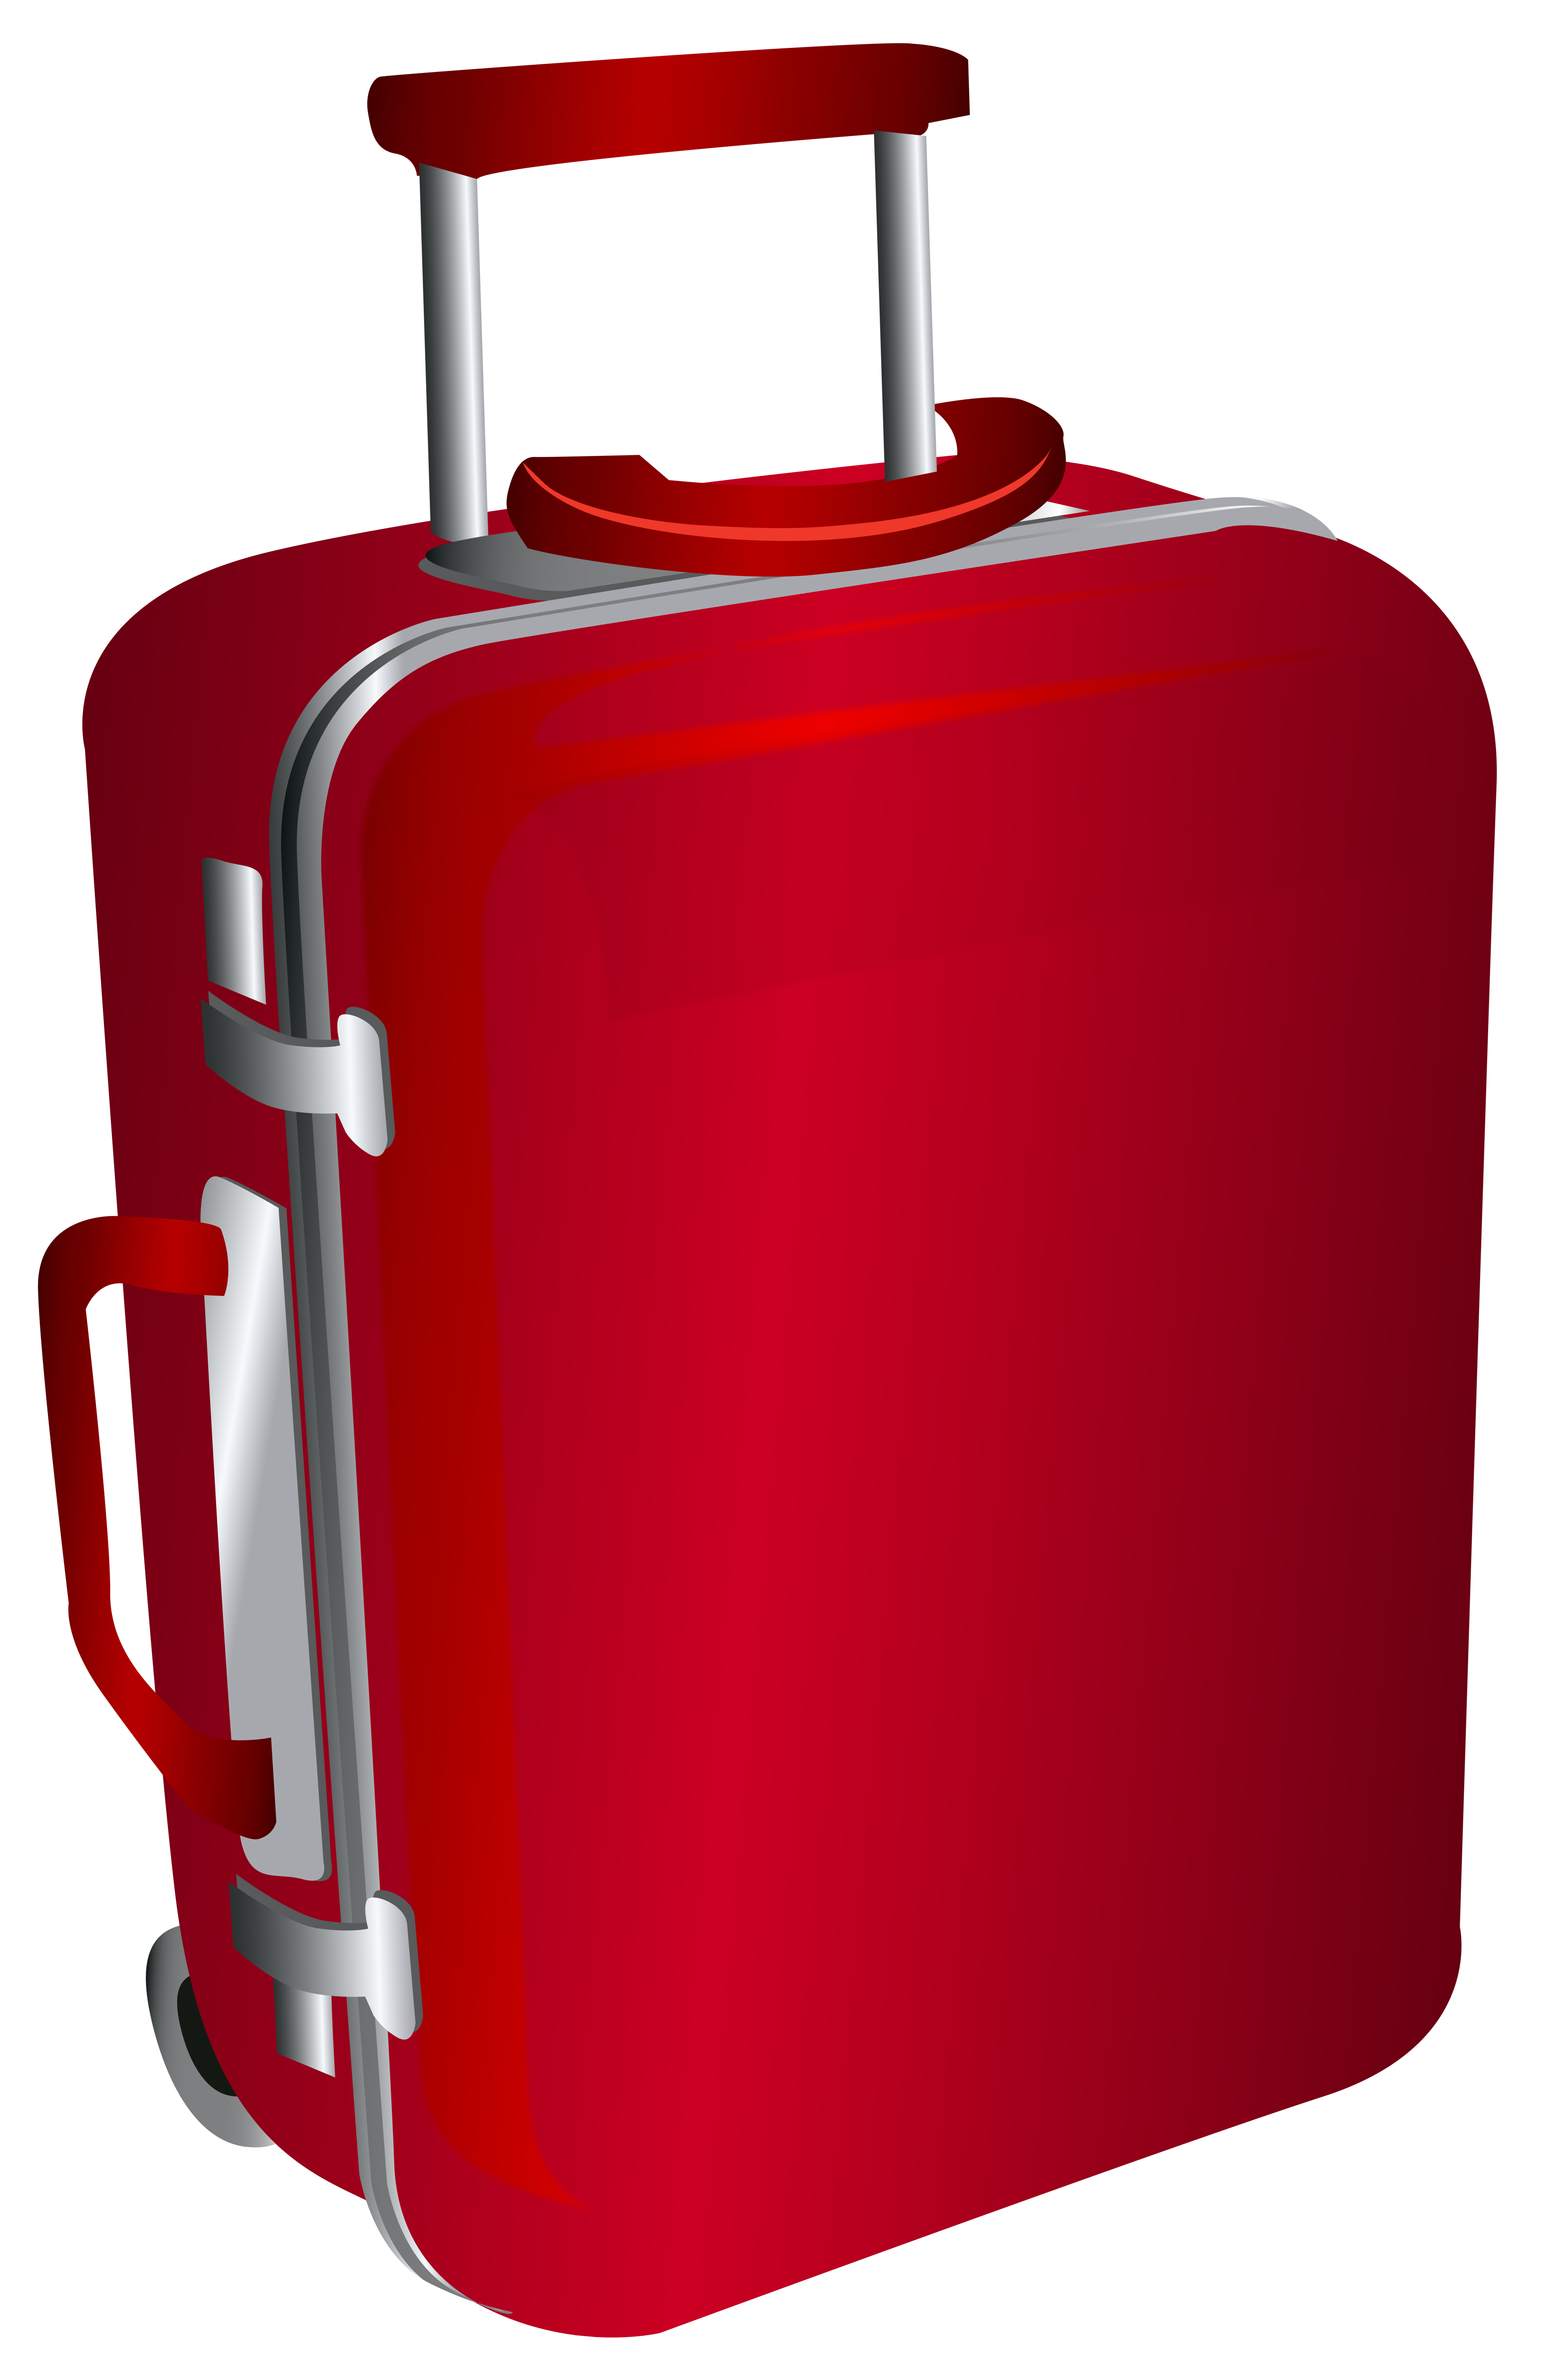 Red Trolley Travel Bag Png Clipart Image Clip Art Design Anime Scenery Wallpaper